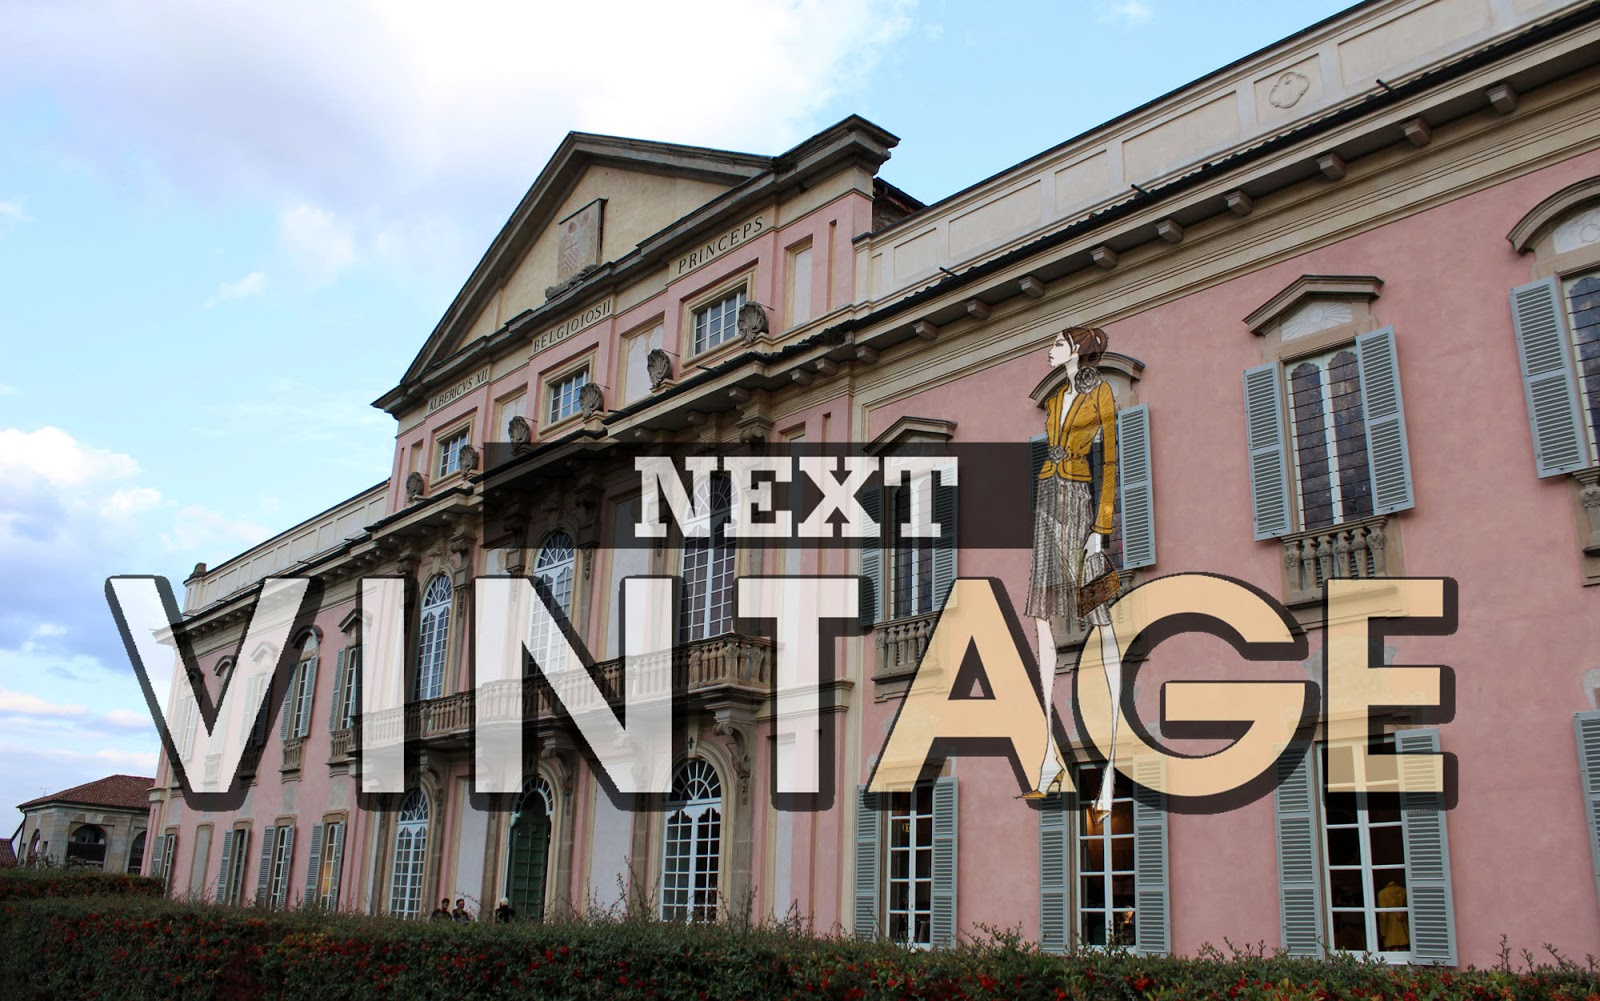 Eniwhere Fashion - Next Vintage - Belgioioso castle